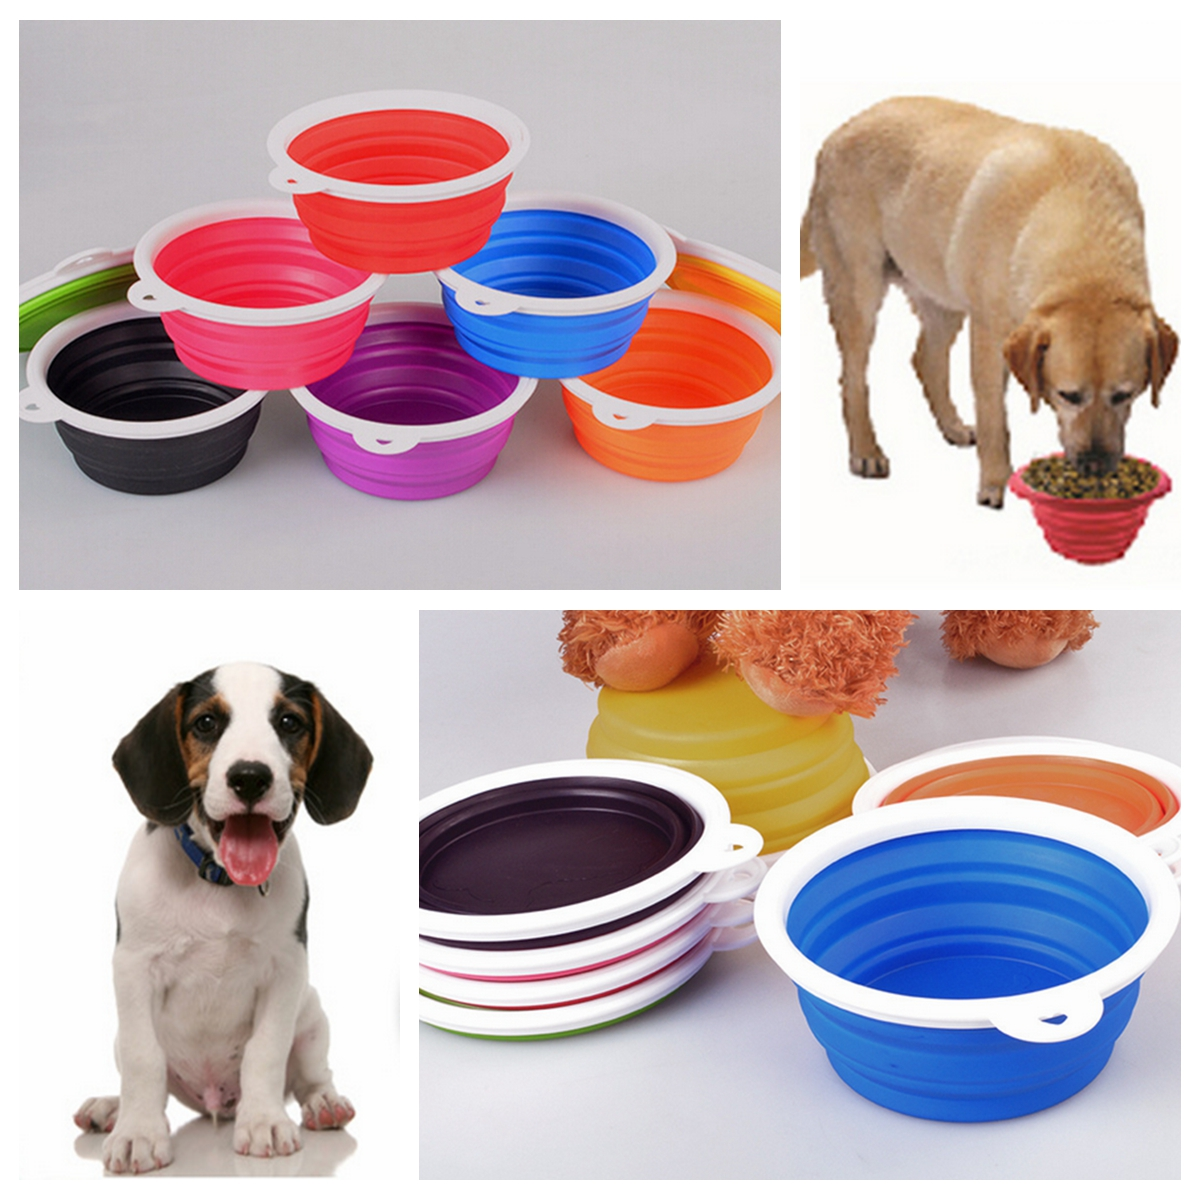 Collapsible Silicone Pet Bowl Expandable Cup Dish For folding dog bowl Pet Dog/Cat Food Water Feeding Portable Travel Bowl